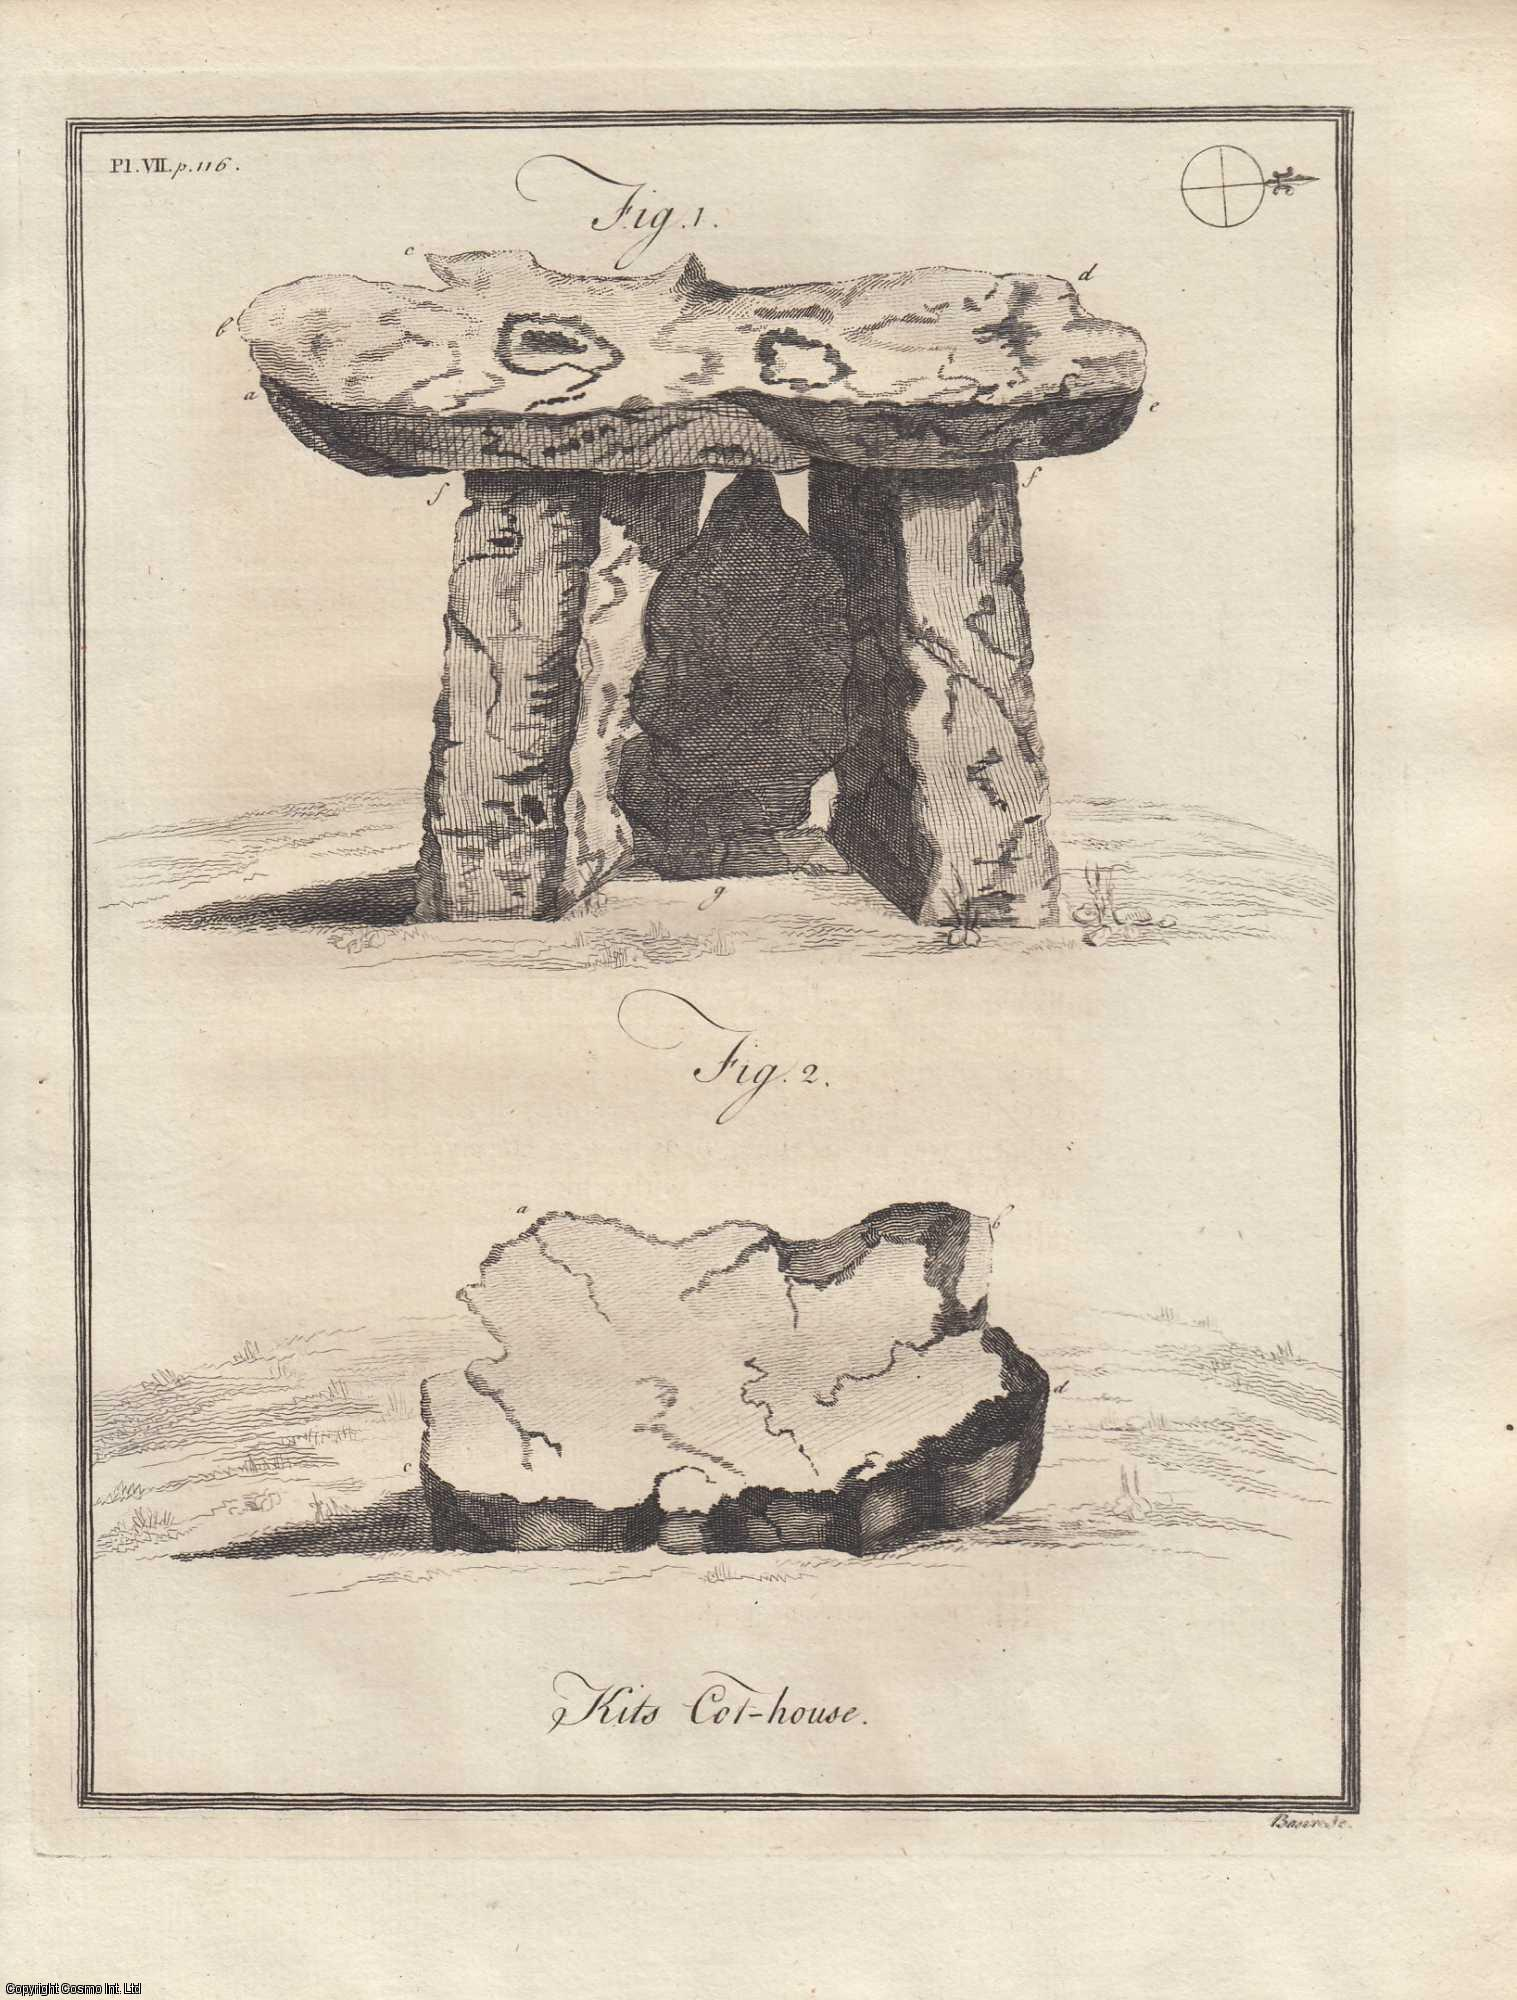 MR. COLEBROOKE - An Account of the Monument commonly ascribed to Catigern. A rare original article from the journal Archaeologia, 1773.